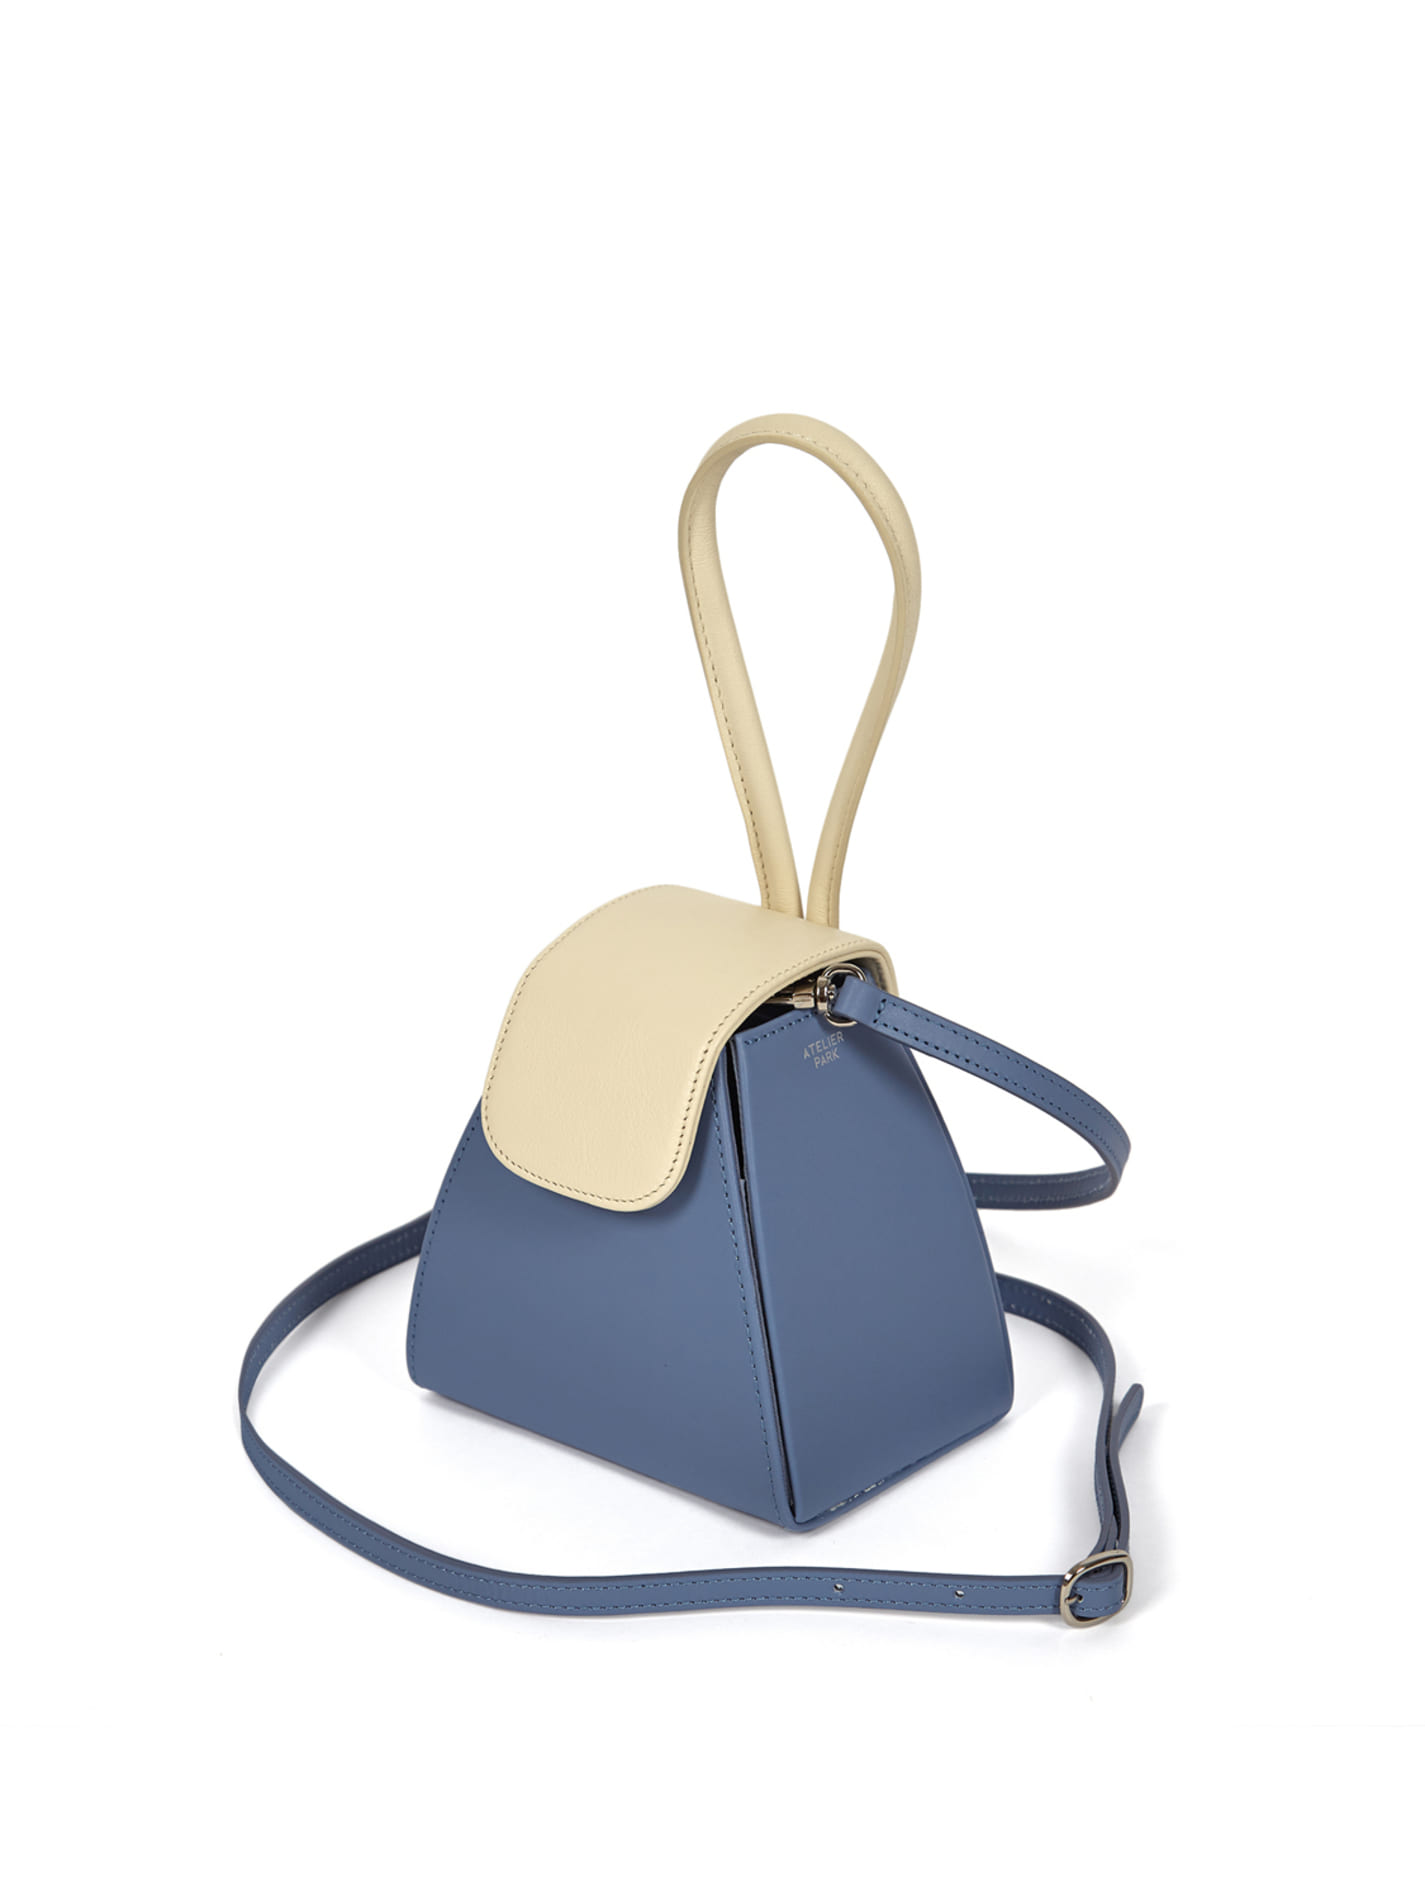 ATELIER PARK COLOR BLOCK HANDLE BAG -SKY BLUE / WHITE (레더스트랩포함)